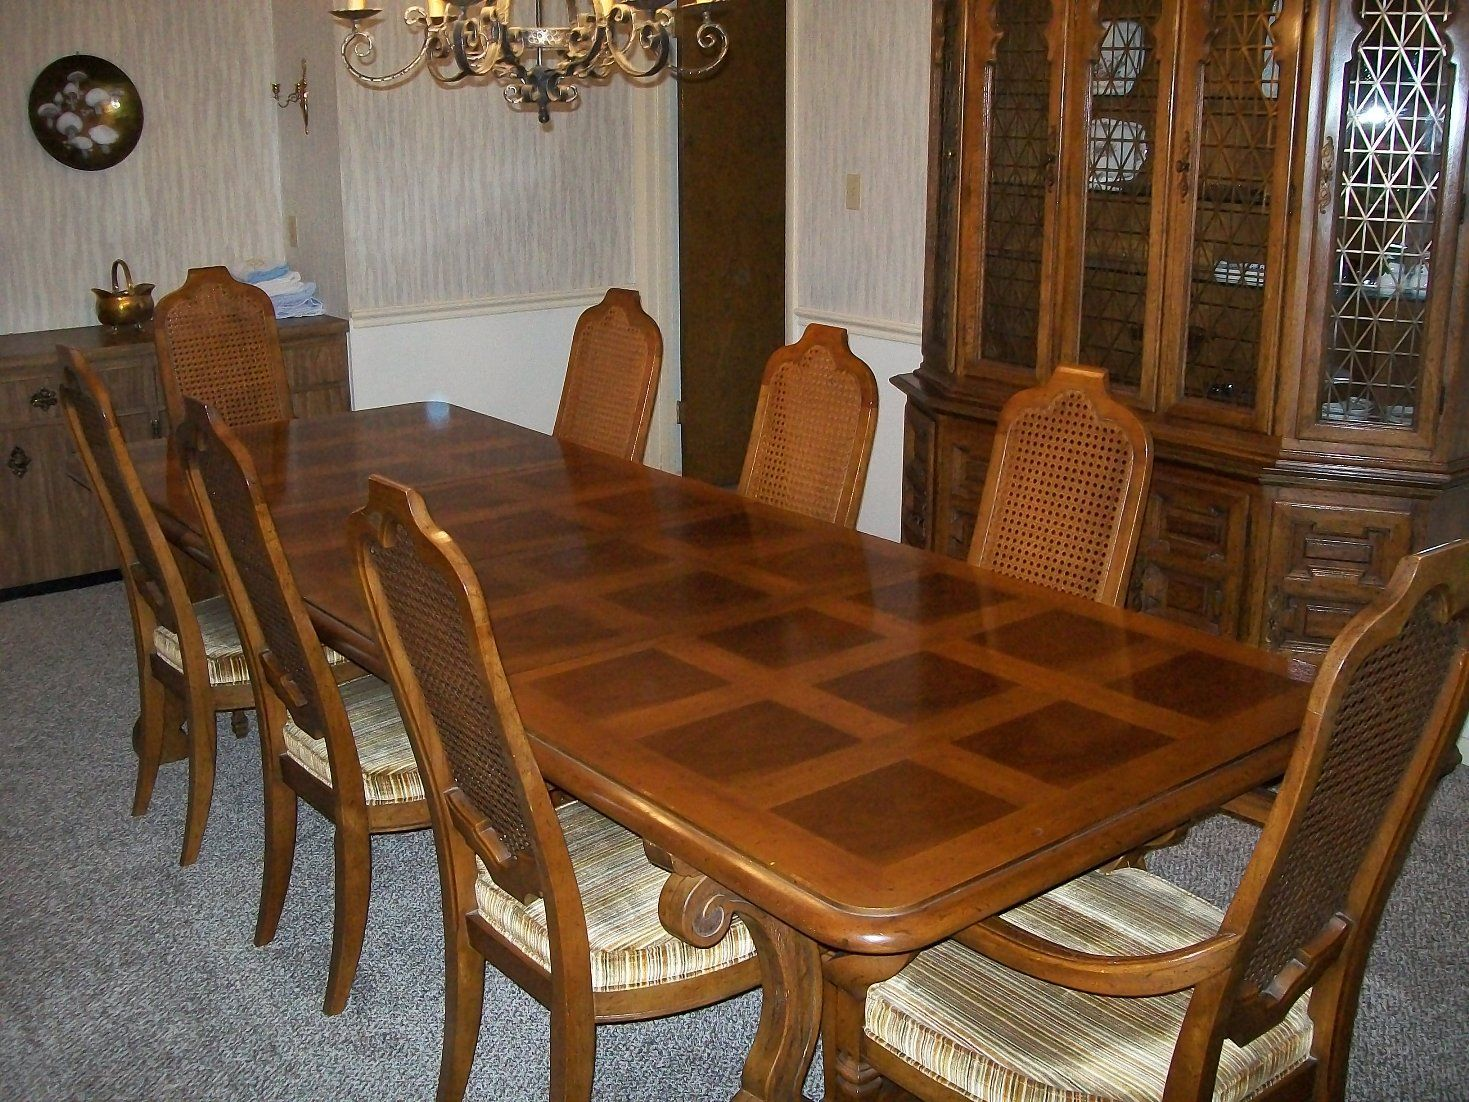 Dining Room Table Pads Maximum Protection Safety And Elegant Look - Table pads atlanta